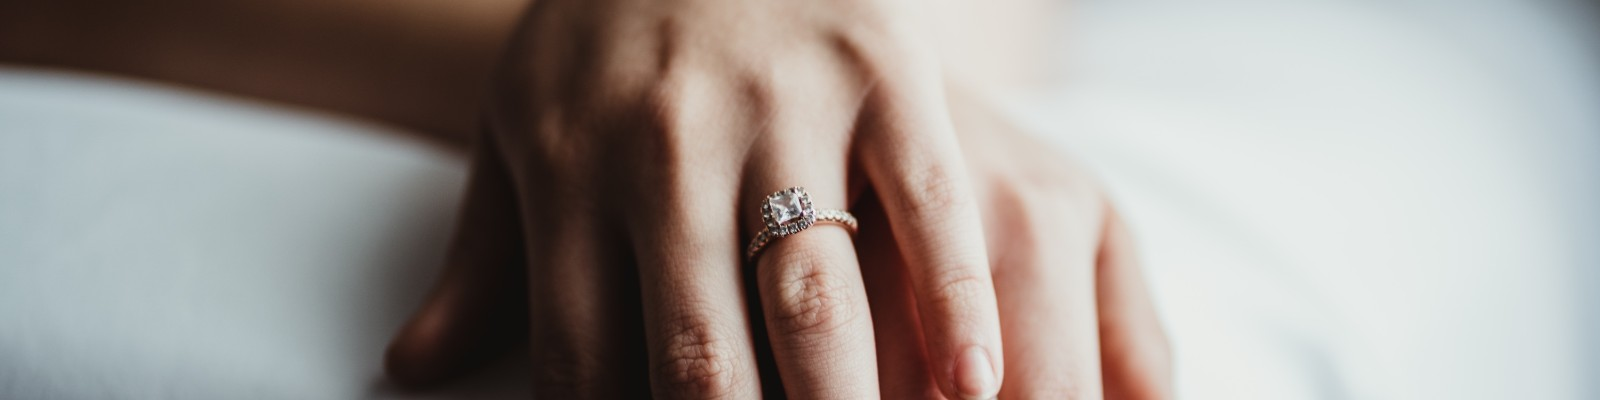 Engagement Rings Guide by Albert's Diamond Jewelers